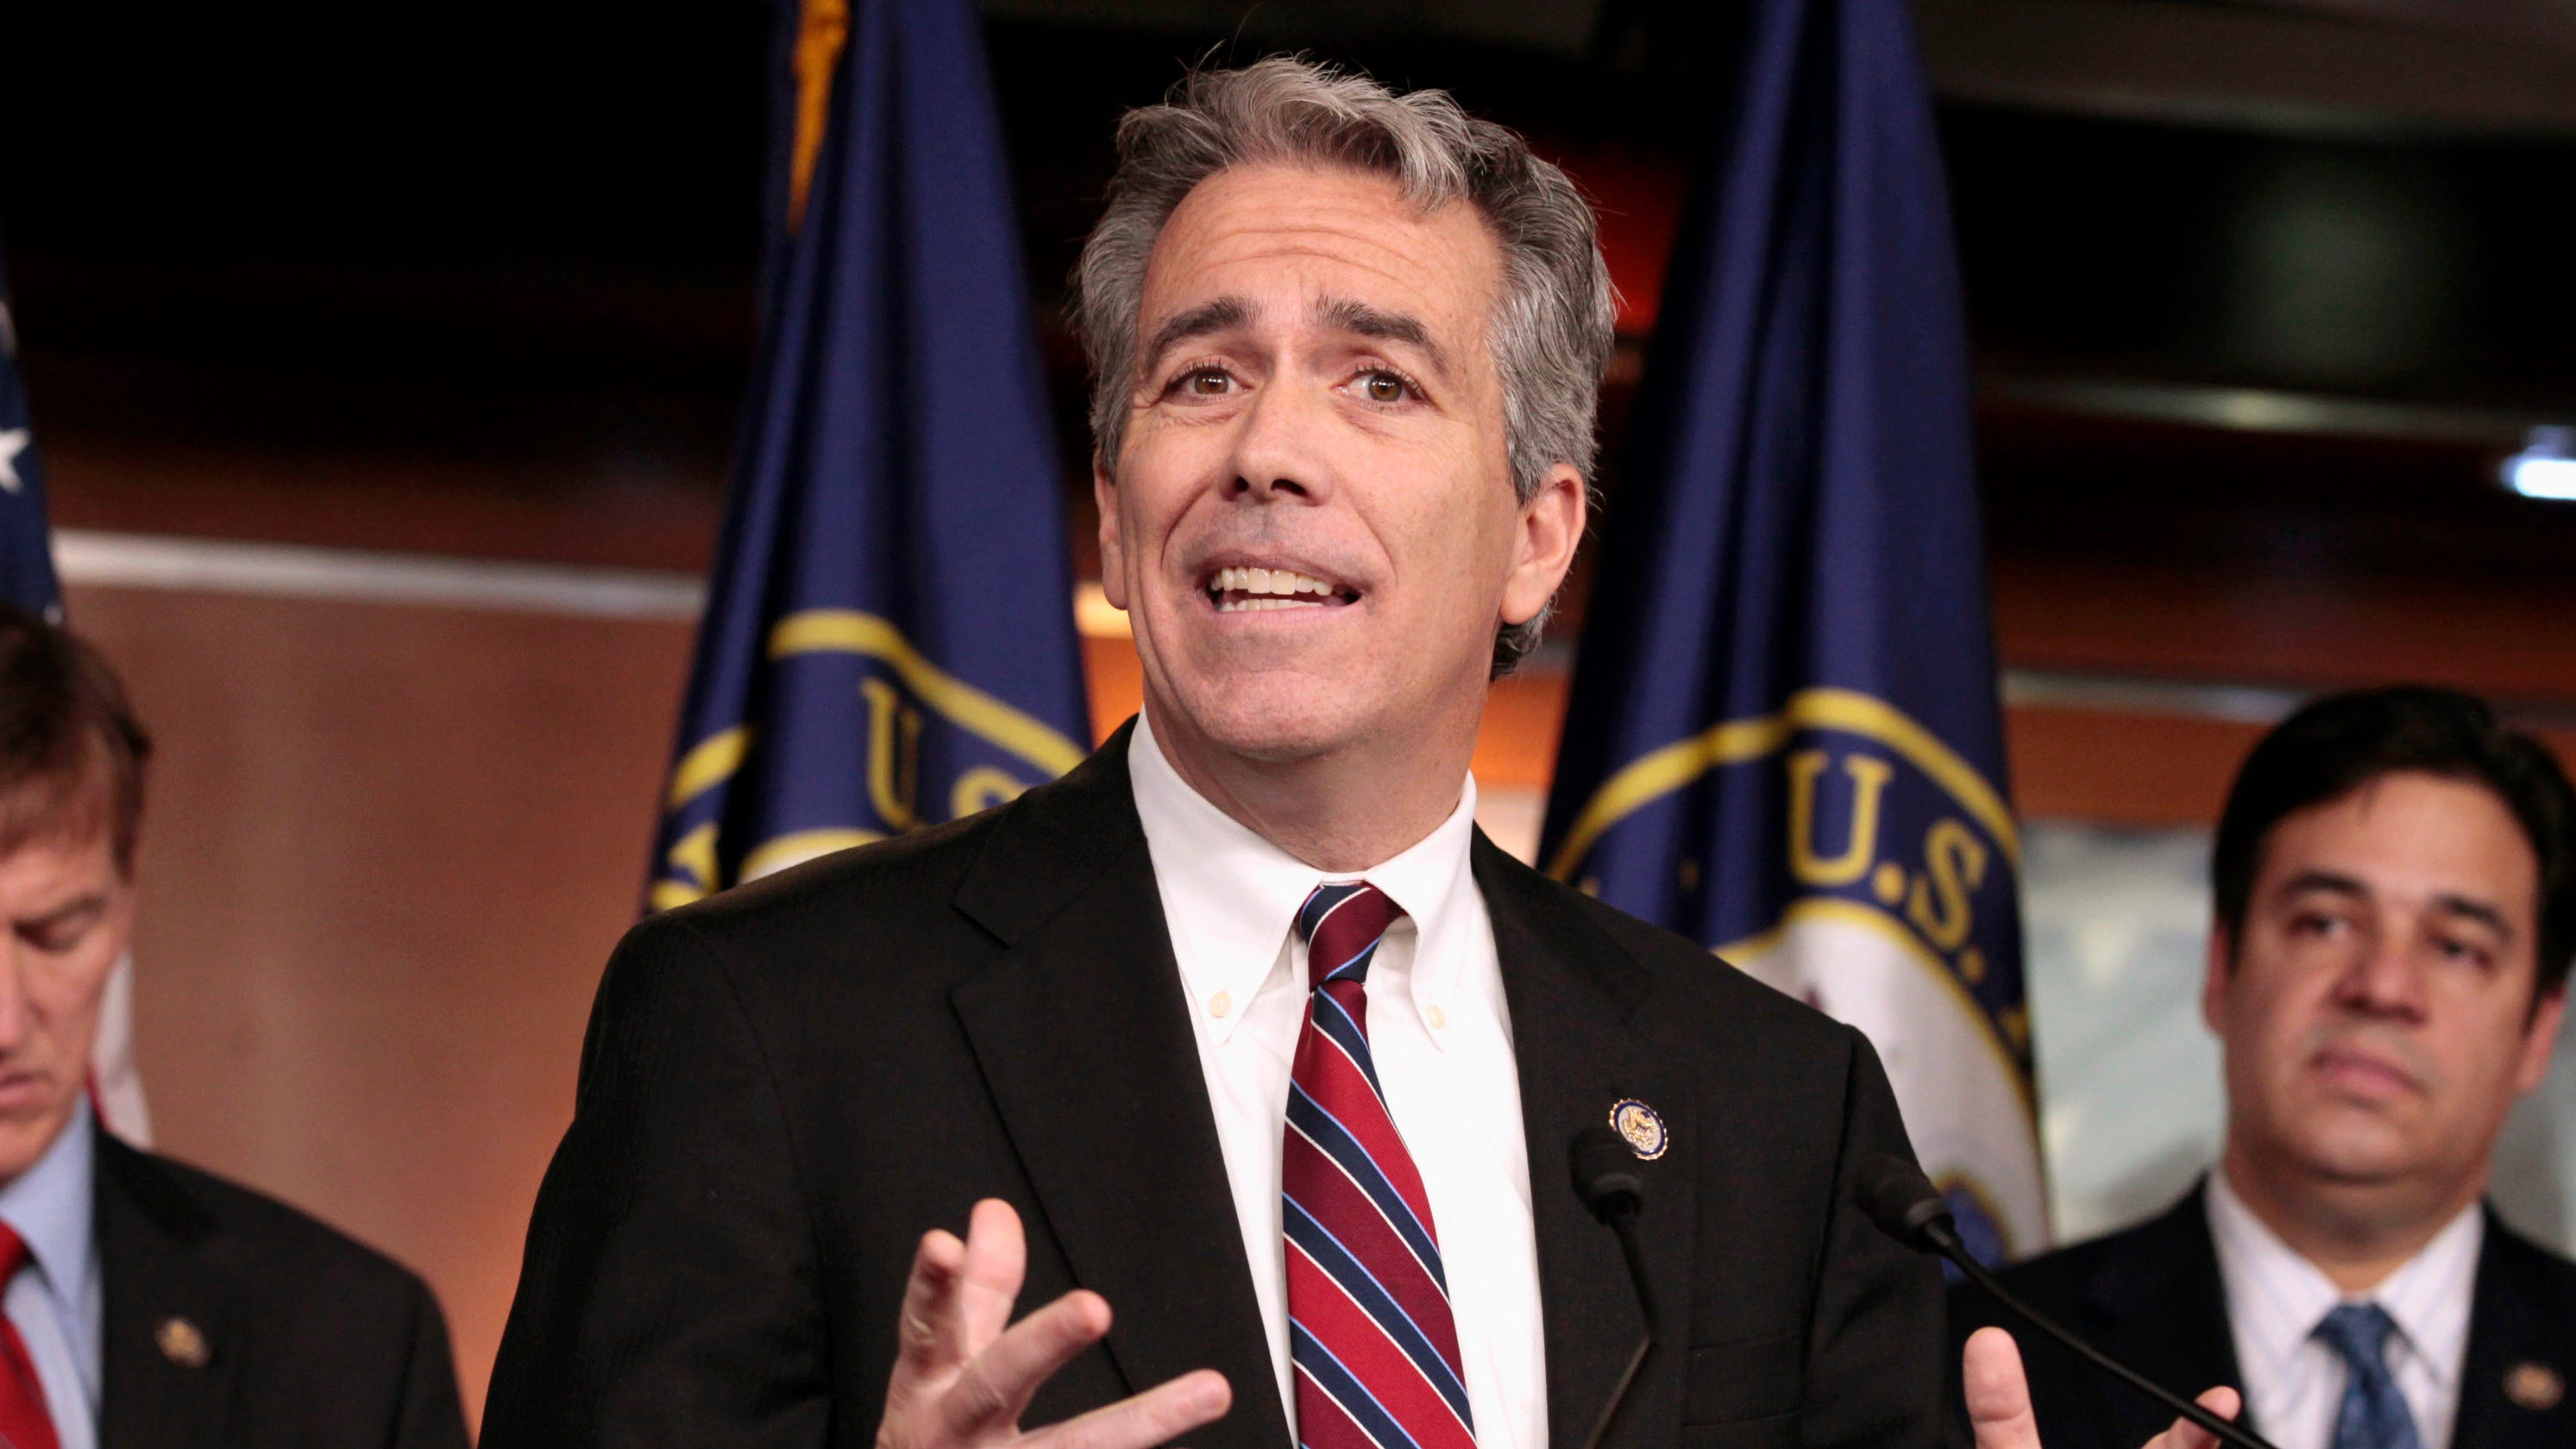 Former Illinois Rep. Joe Walsh announces he will challenge Trump in Republican primary